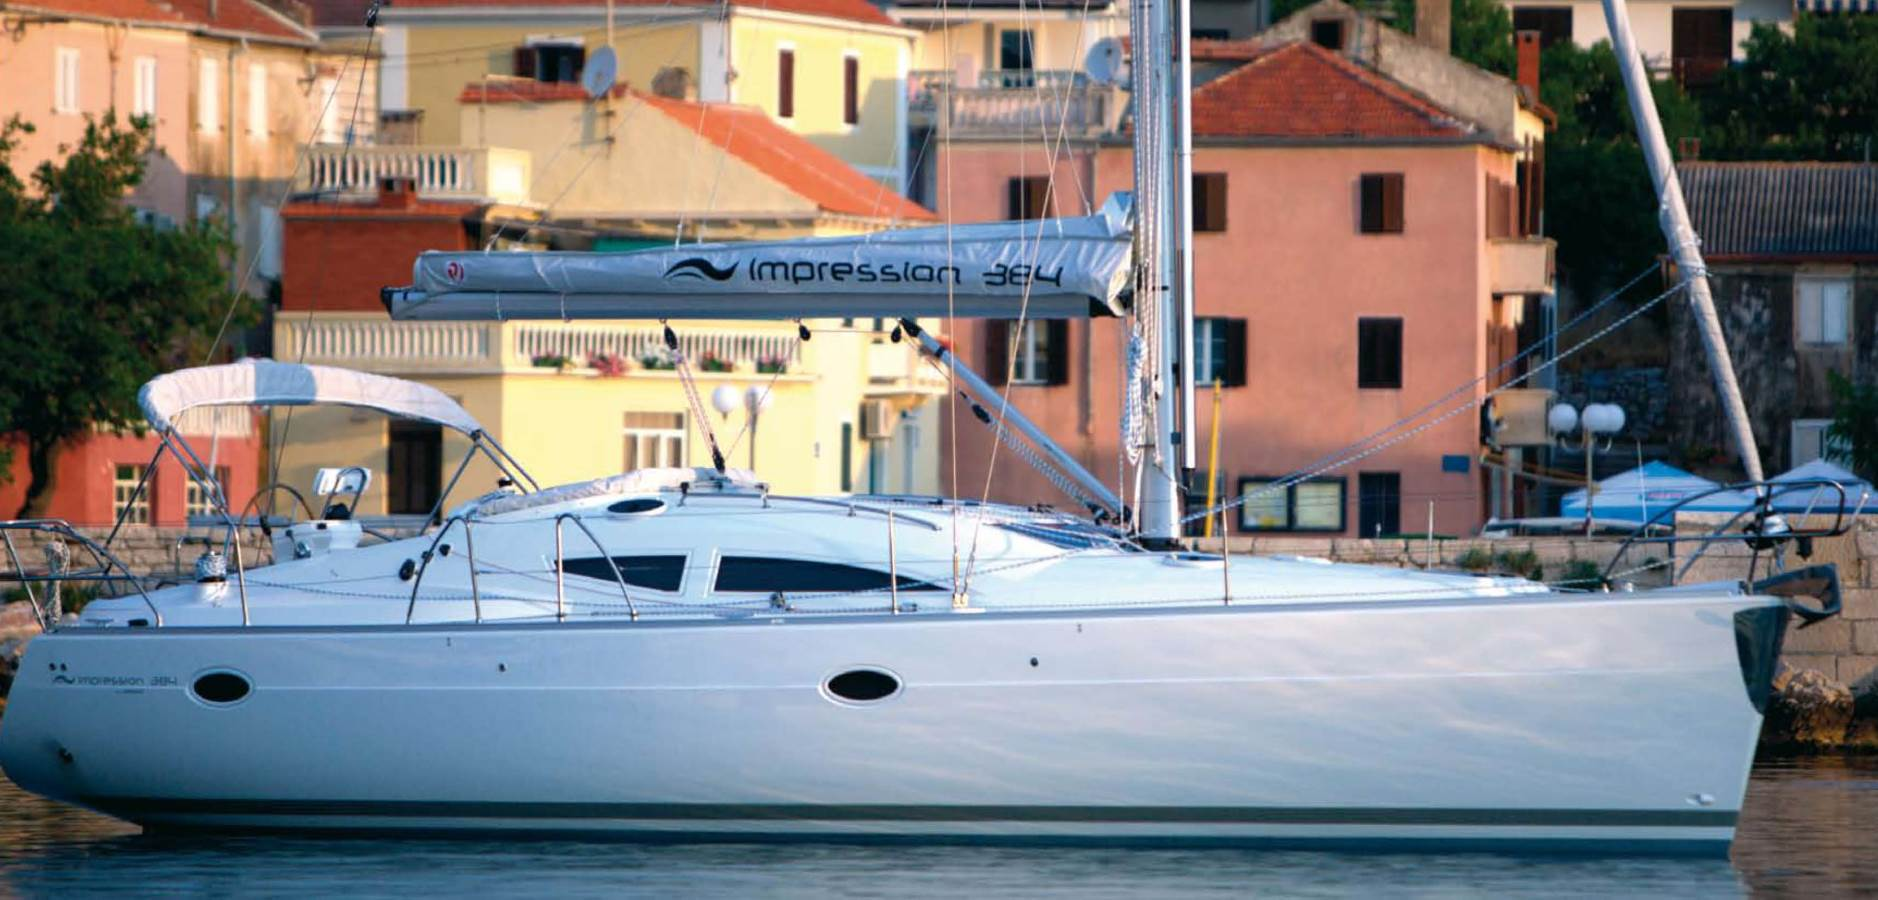 Elan Impression 384 Sailboat for sale